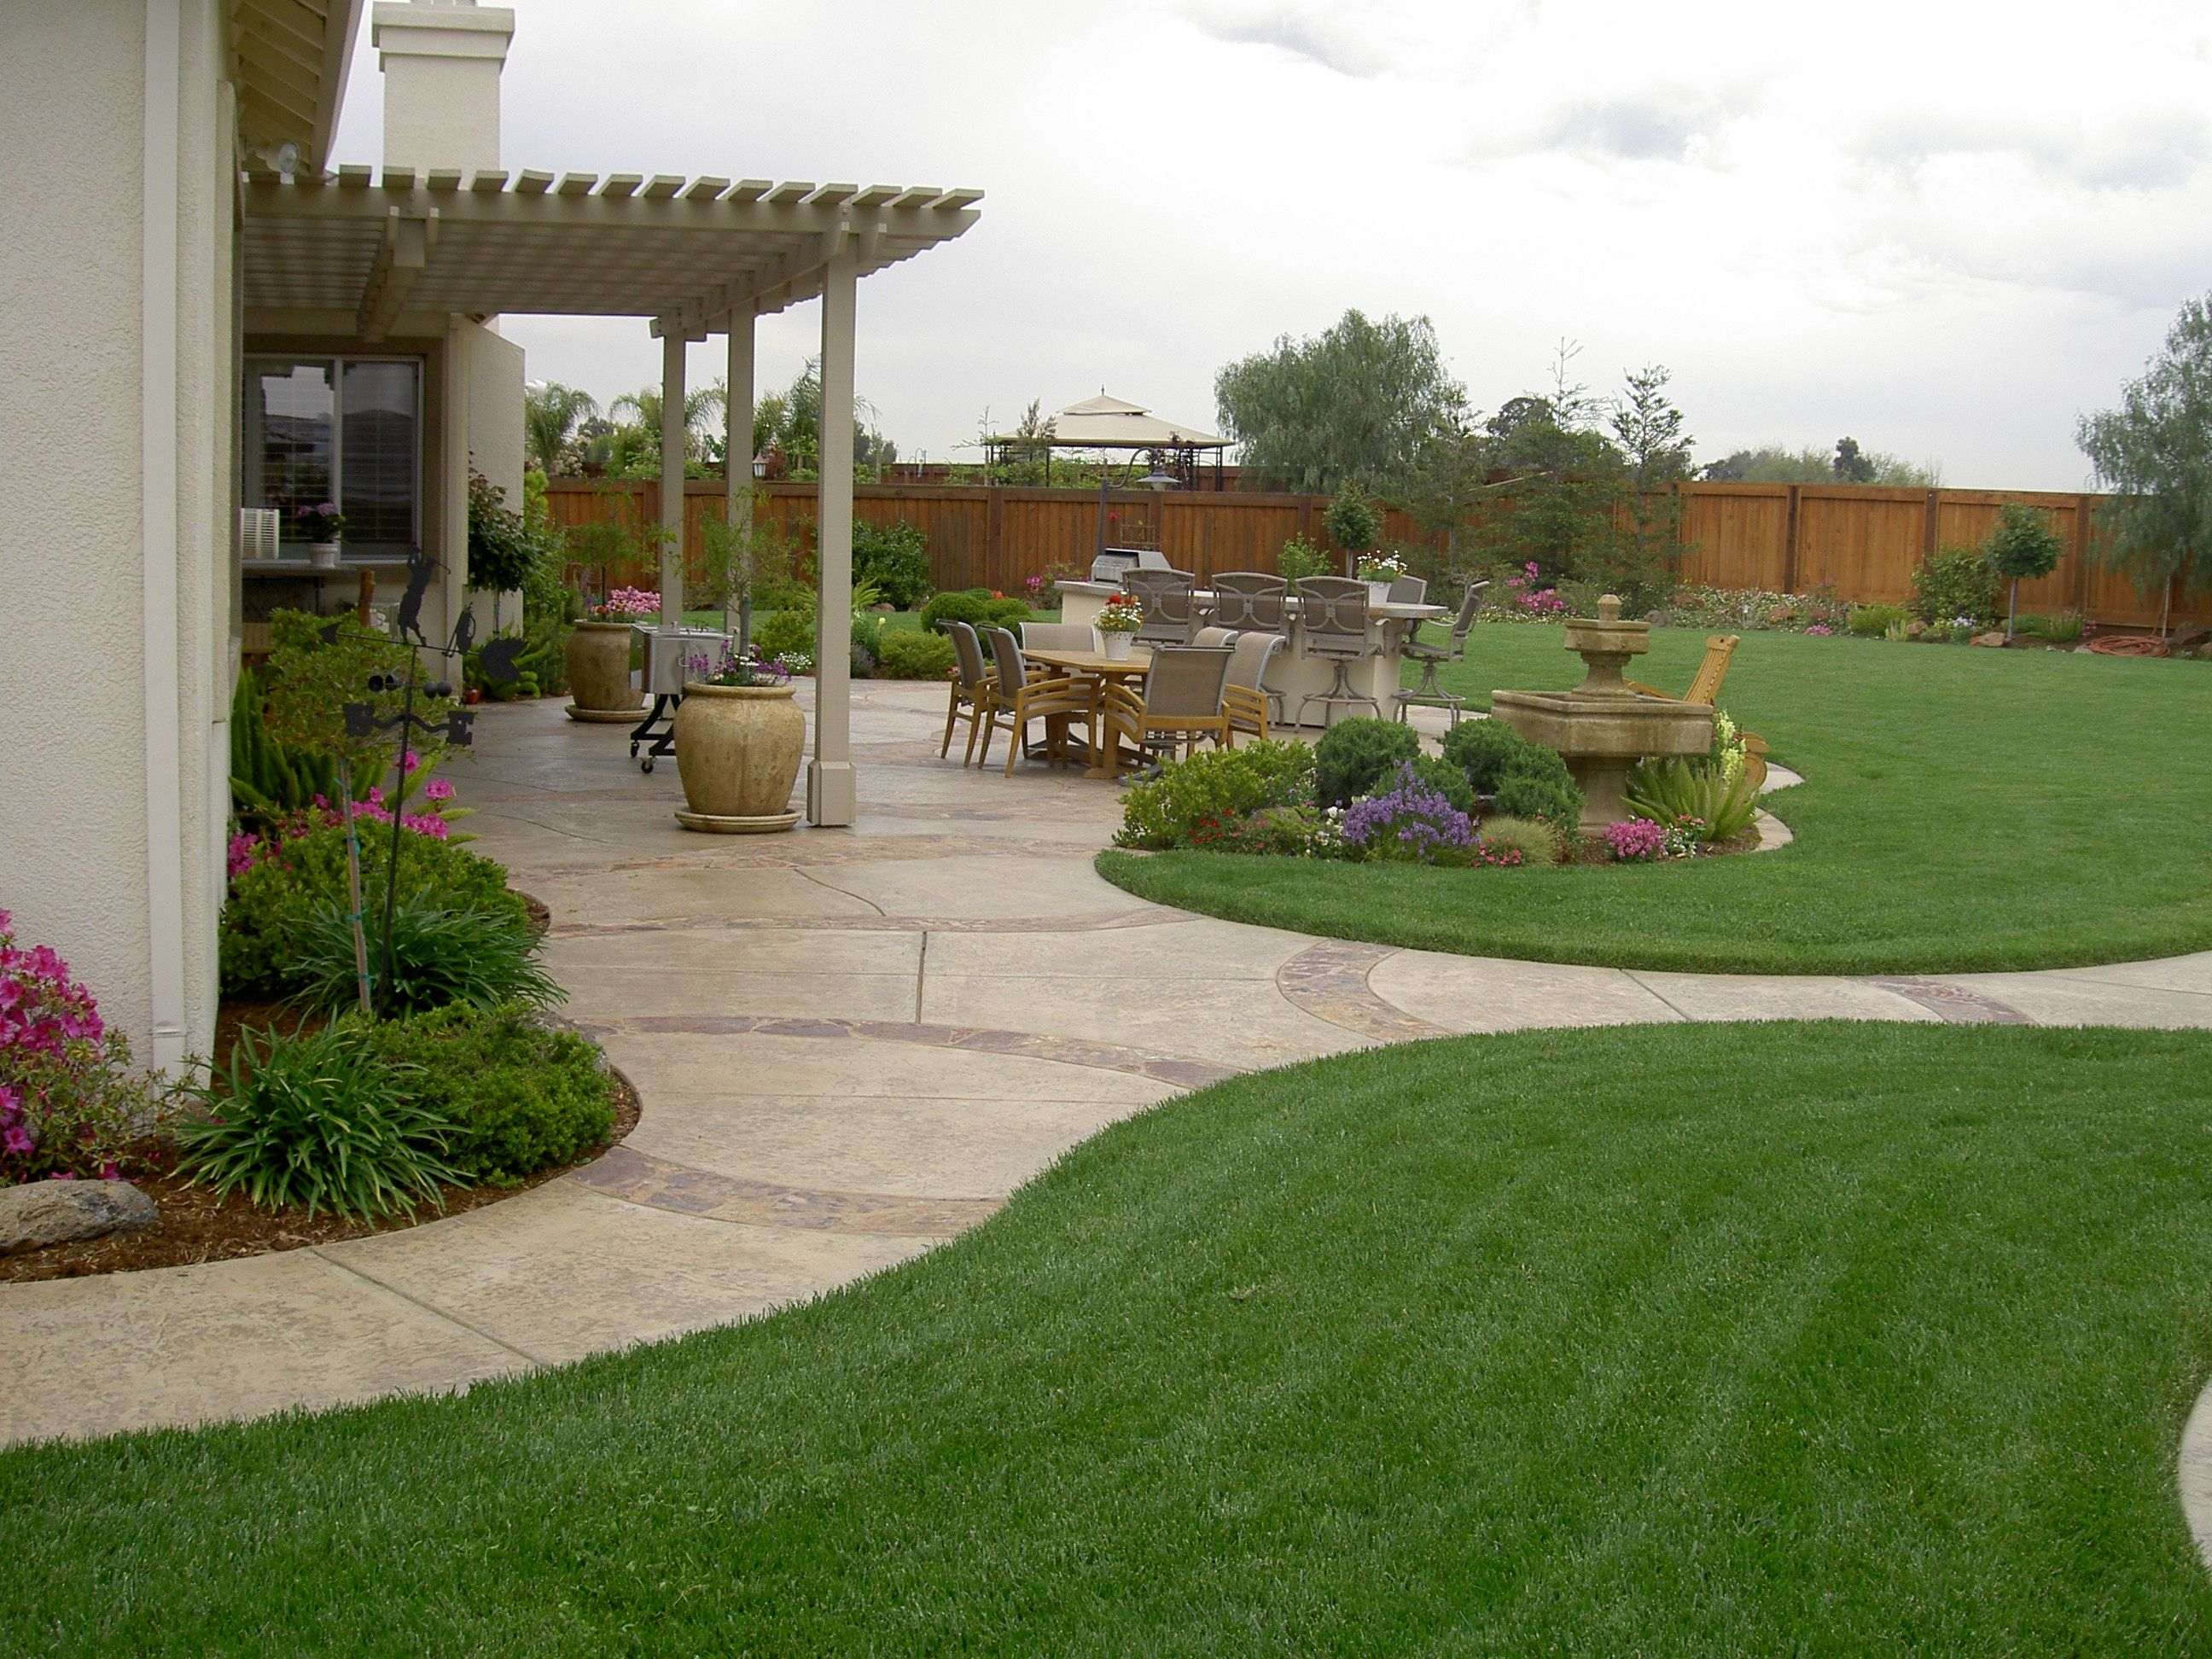 20 Awesome Landscaping Ideas For Your Backyard Gardensoutdoor inside Gardening Ideas For Backyard